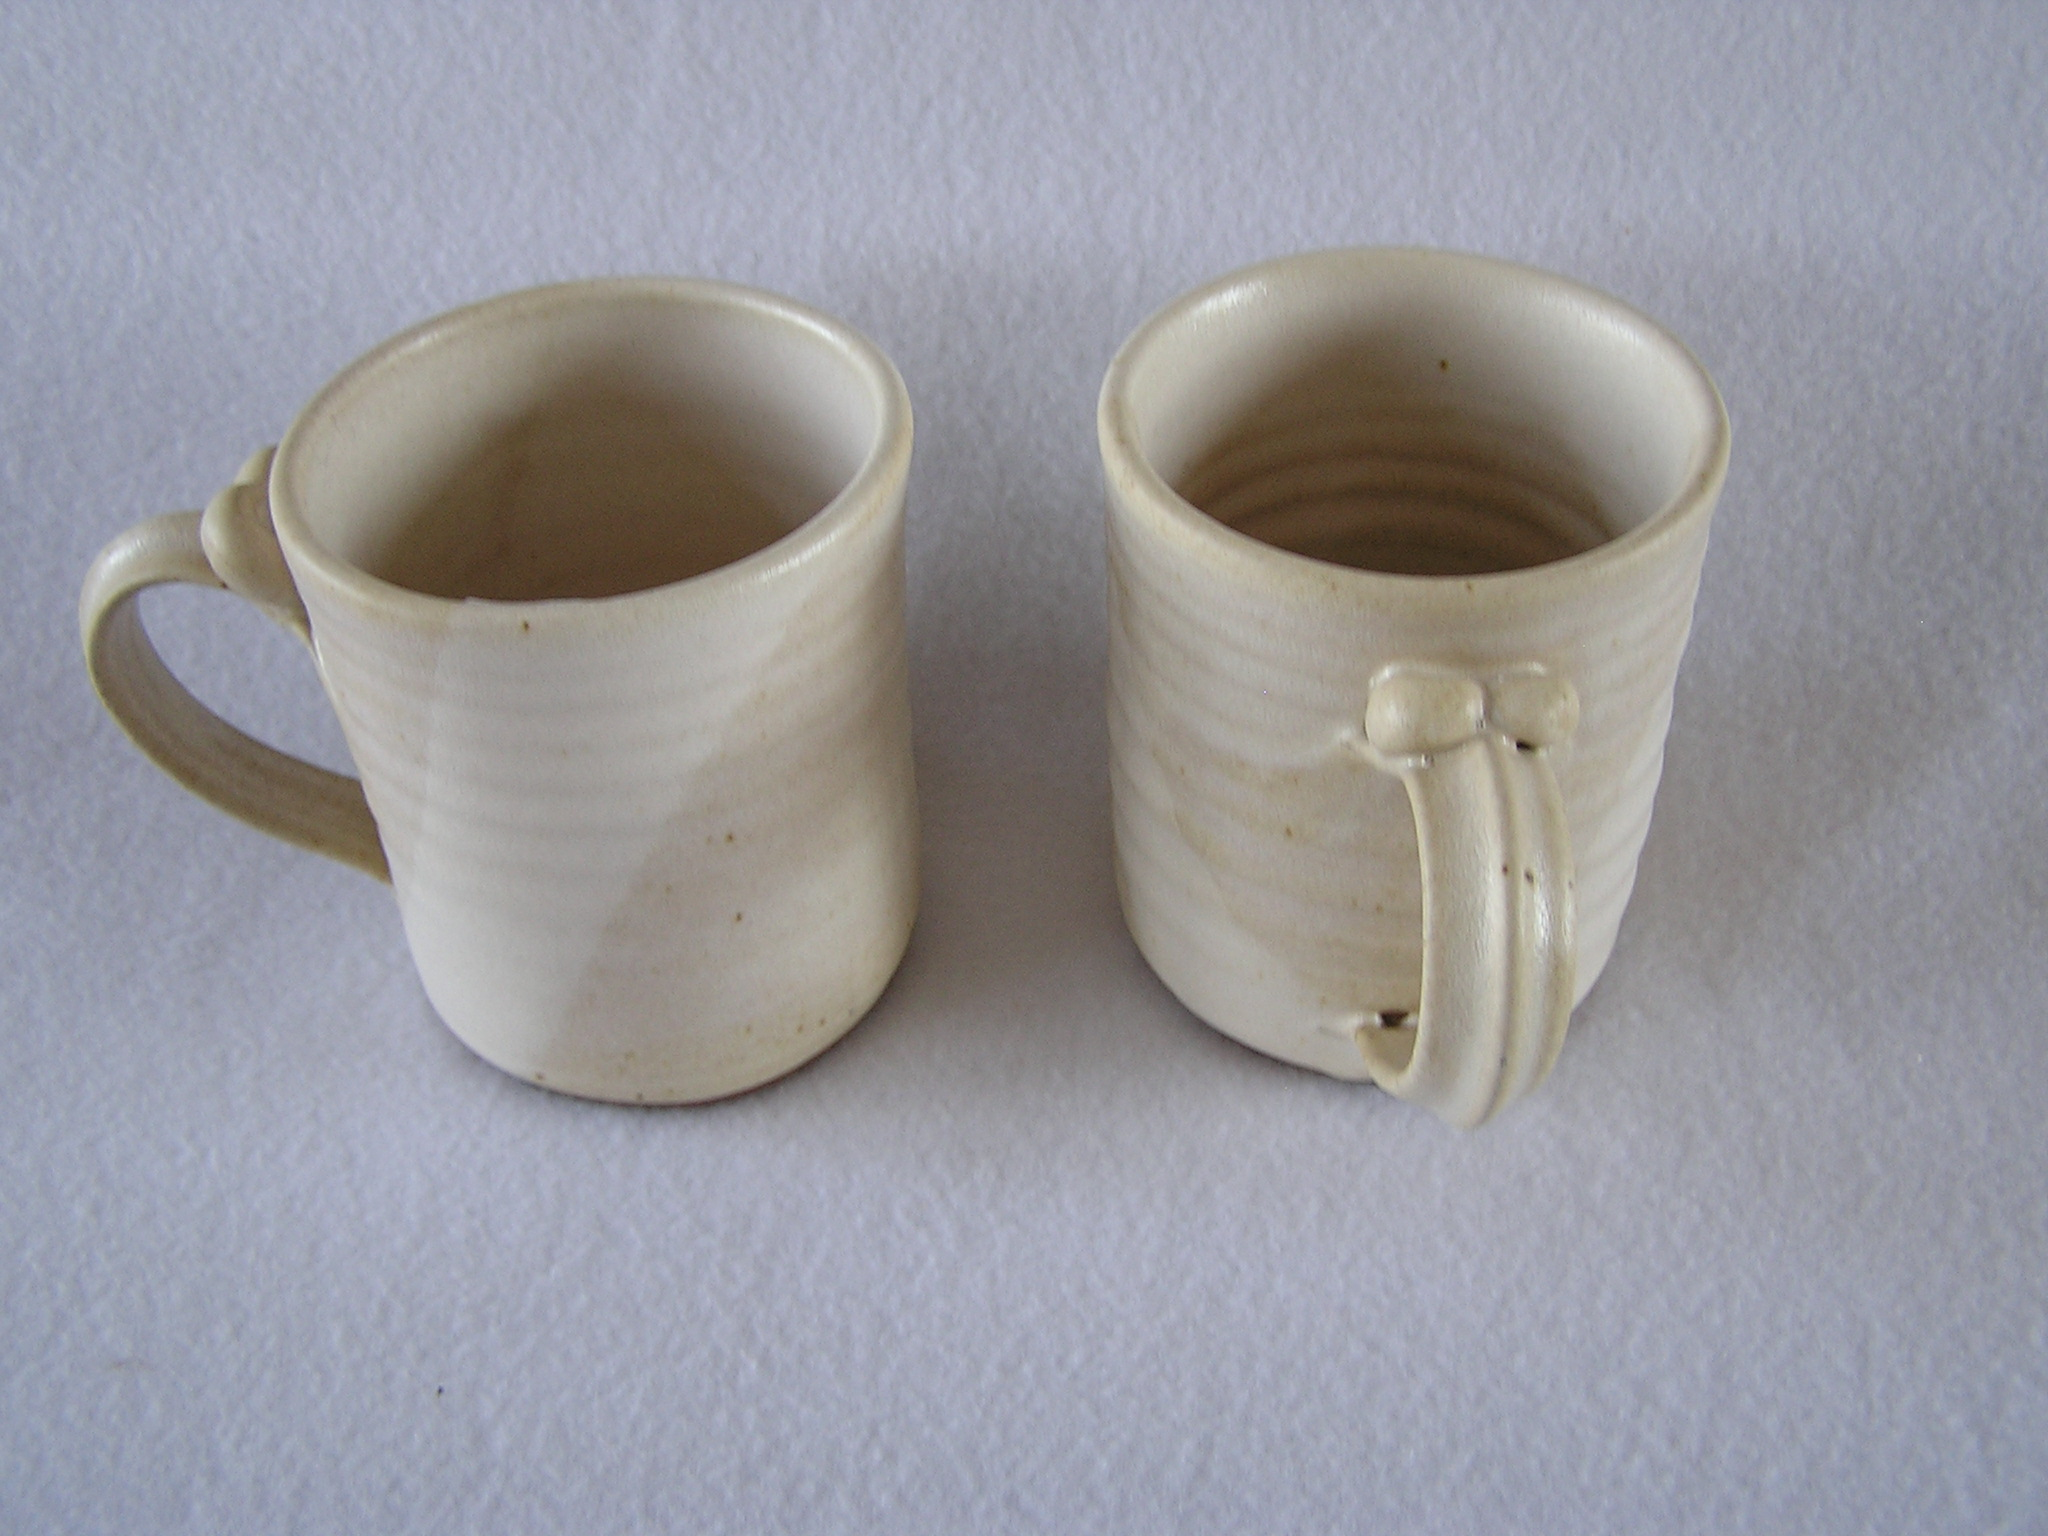 Mug- 4x3 in D822 Pearl White Set 2 (NSF)